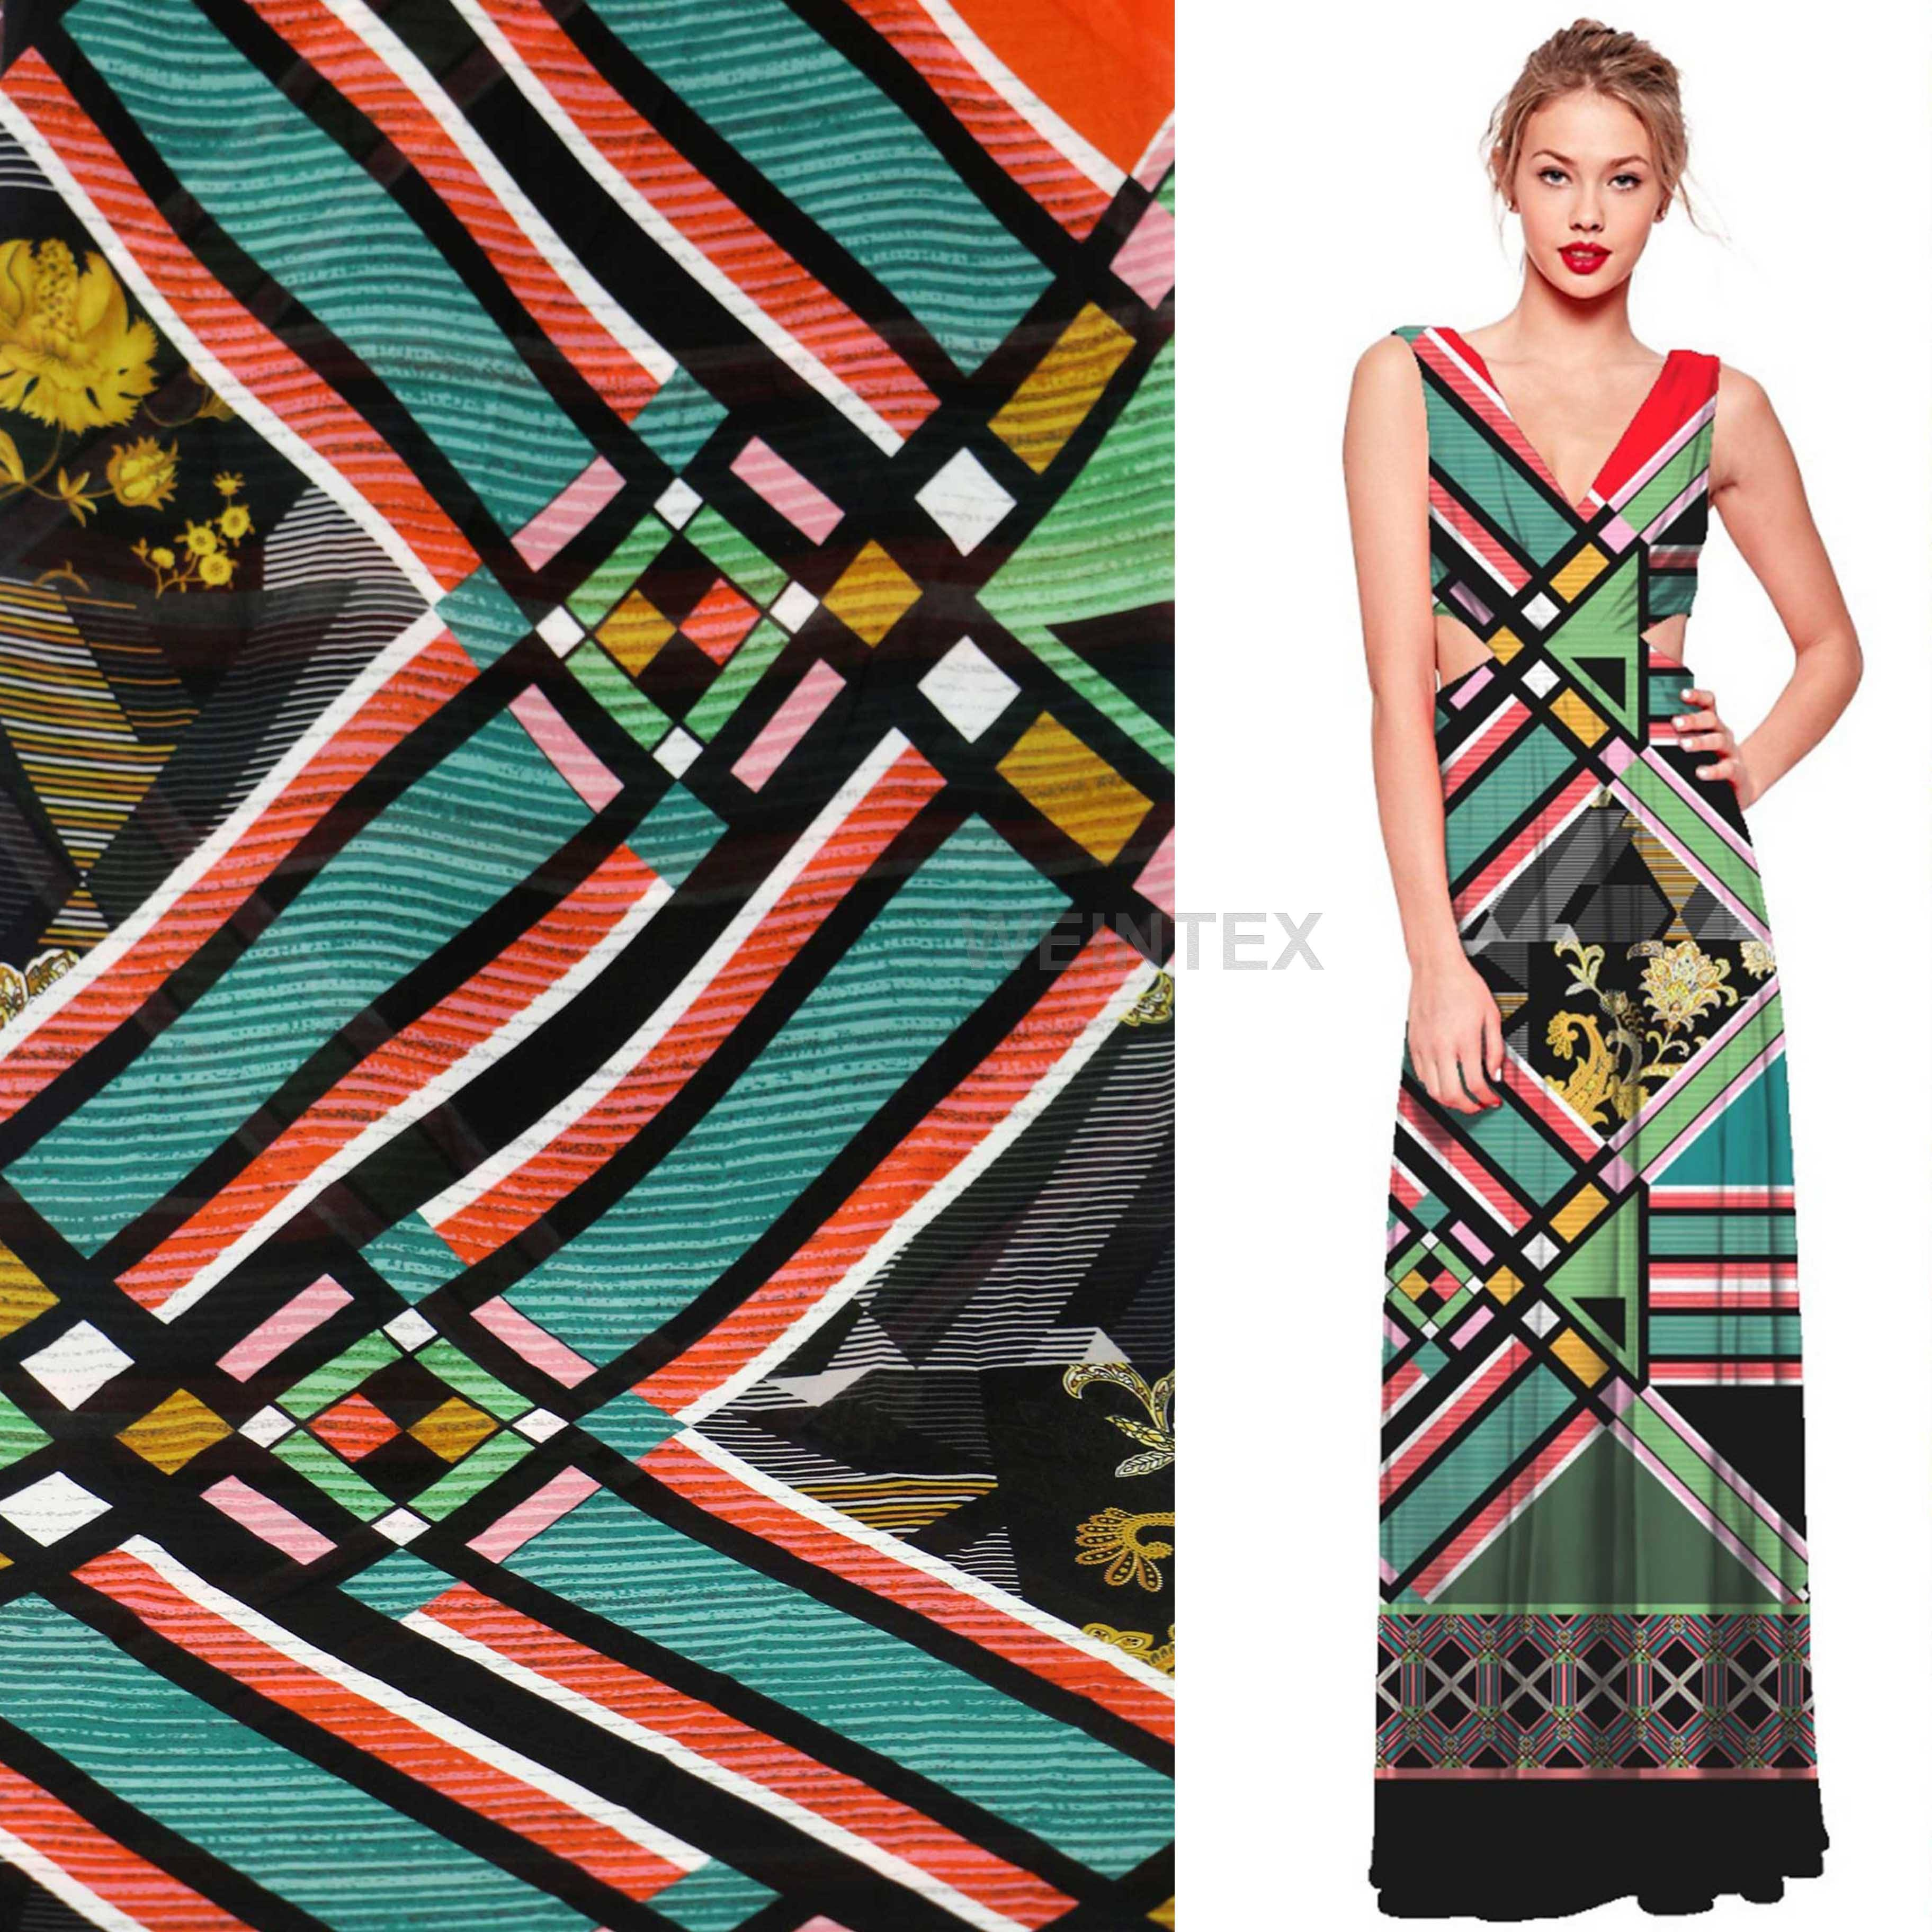 WI-A08 Best price 100% polyester block check geometric printed fabric 85gsm chiffon for maxi dress